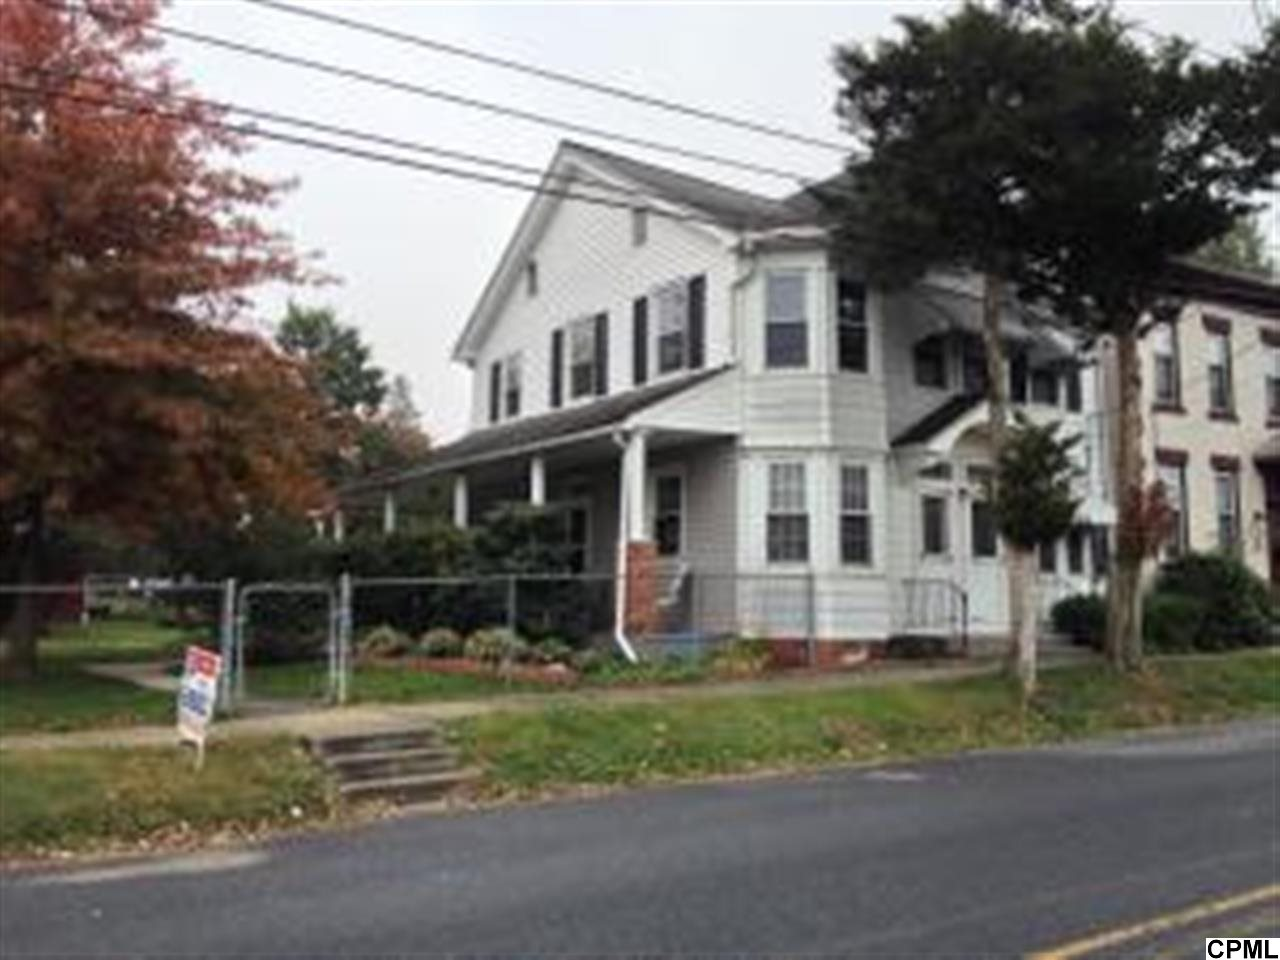 115 N Center St, Bethel Township, PA 17026